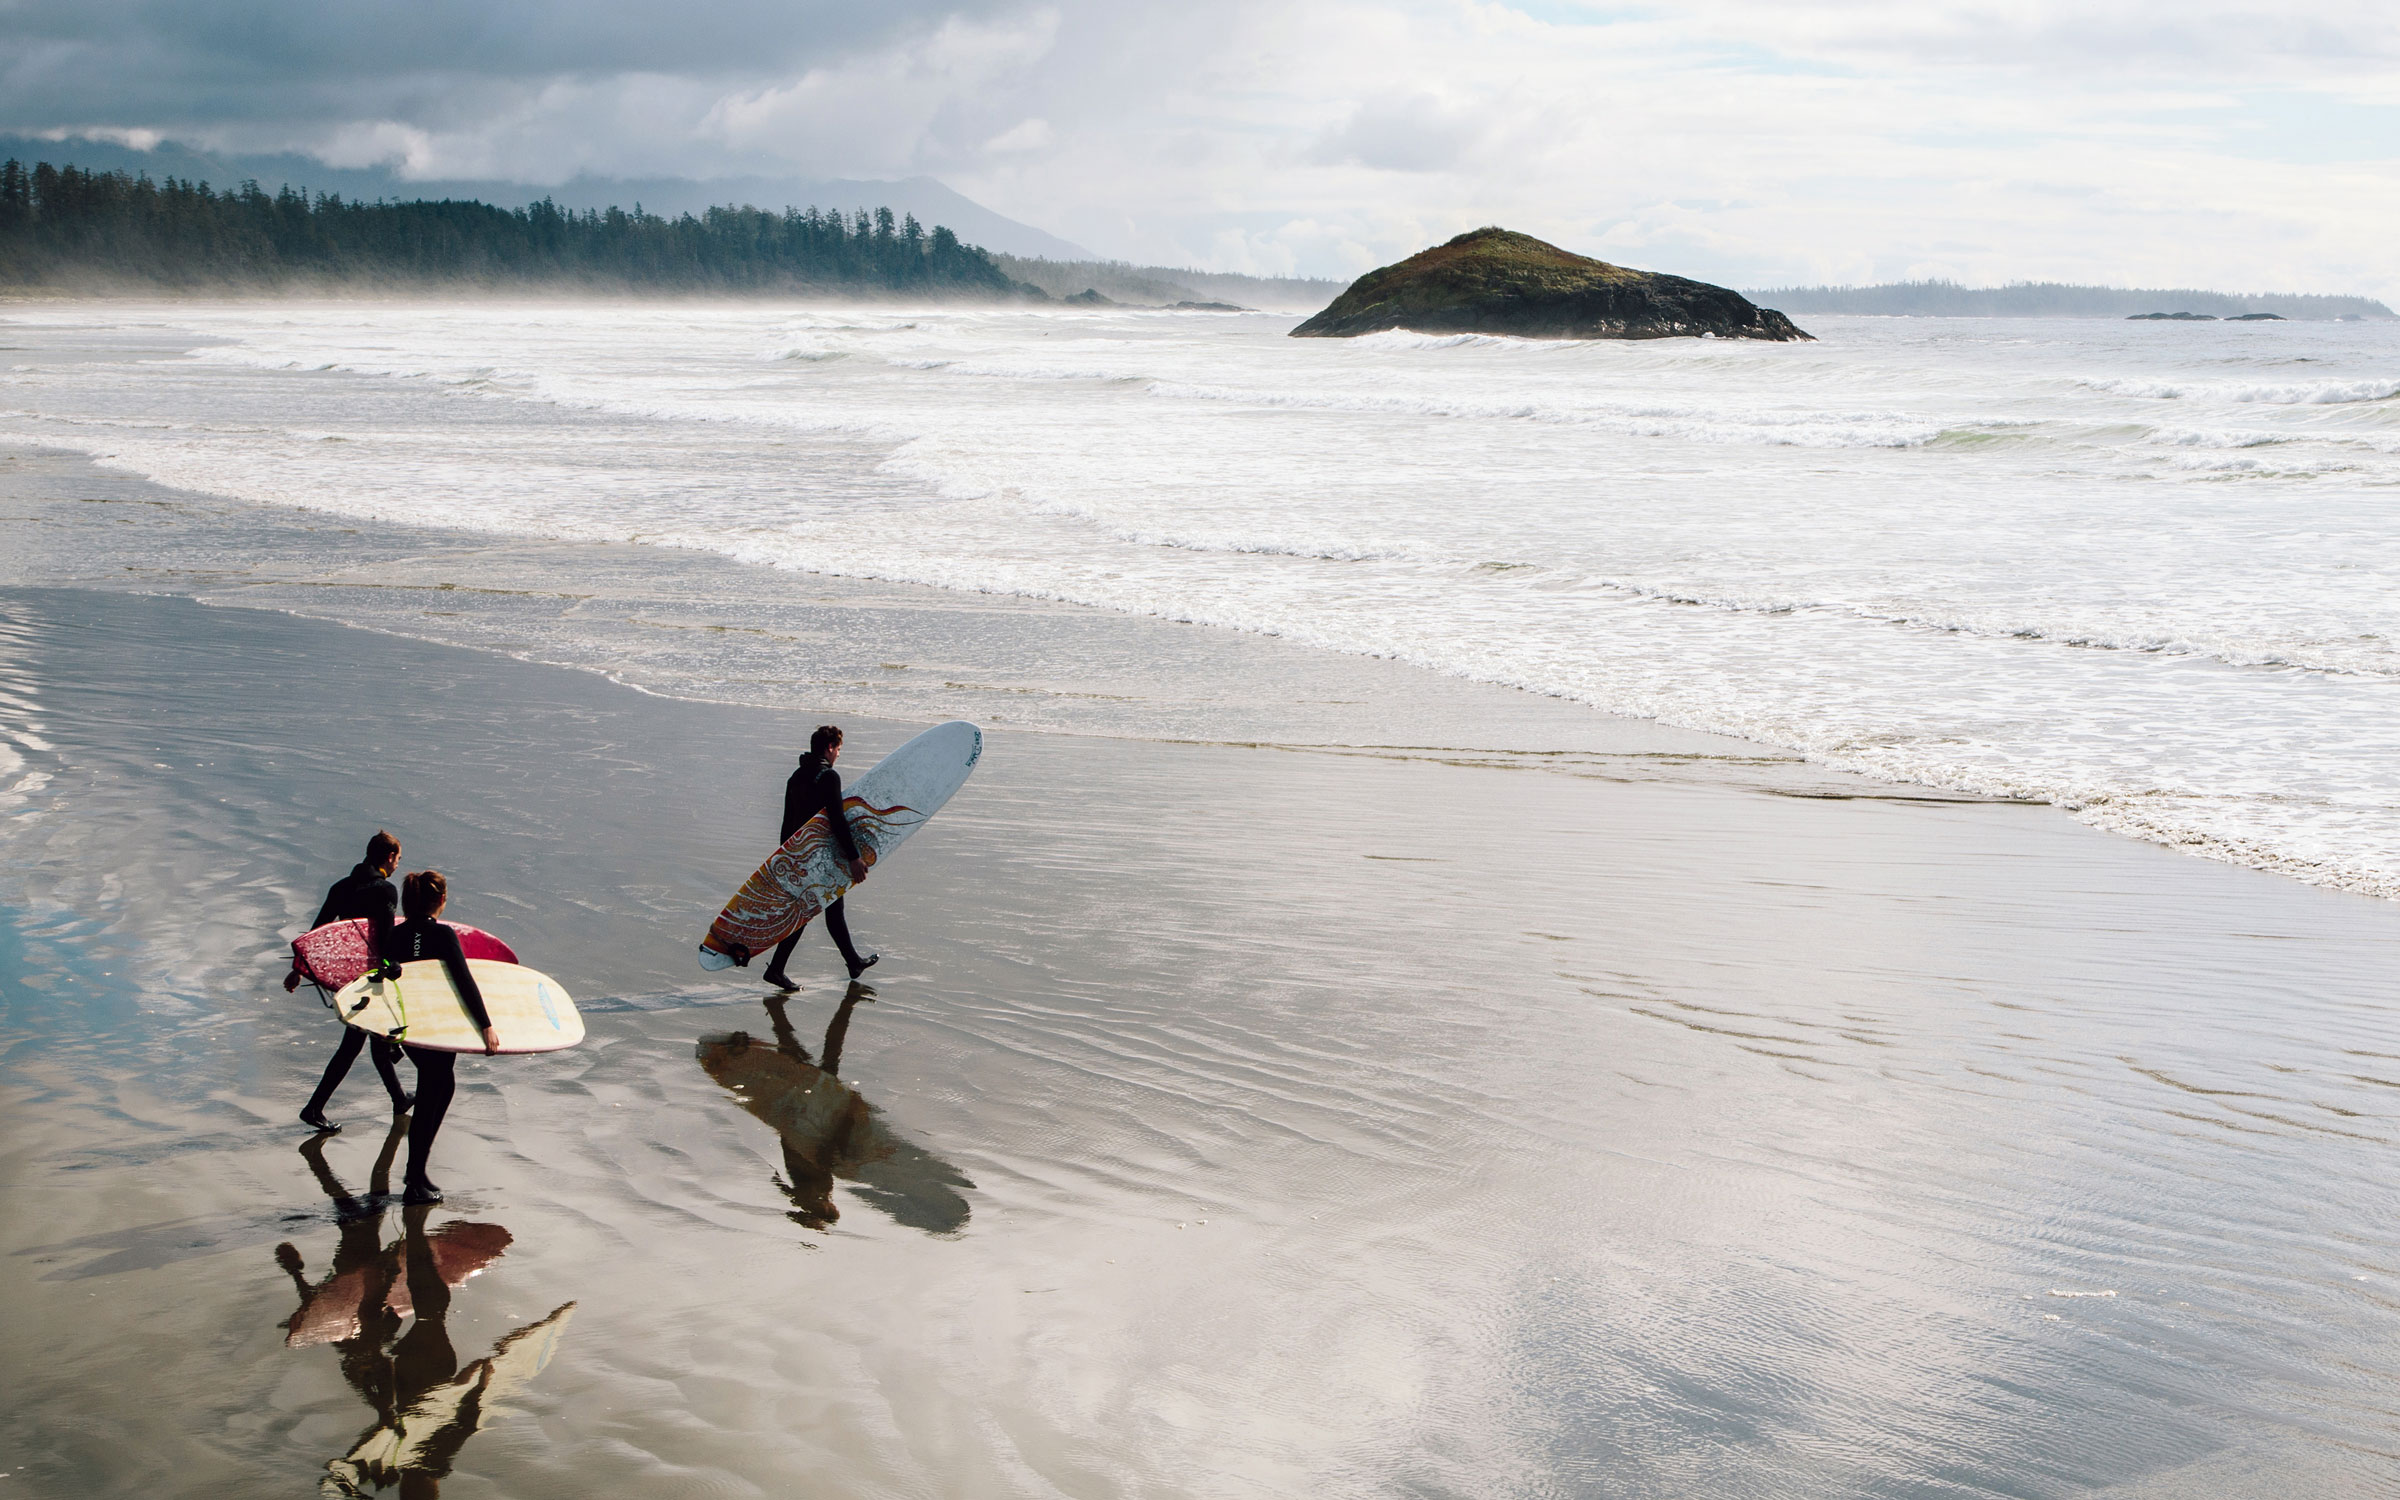 surfers-british-columbia-SURFGEAR0816.jpg